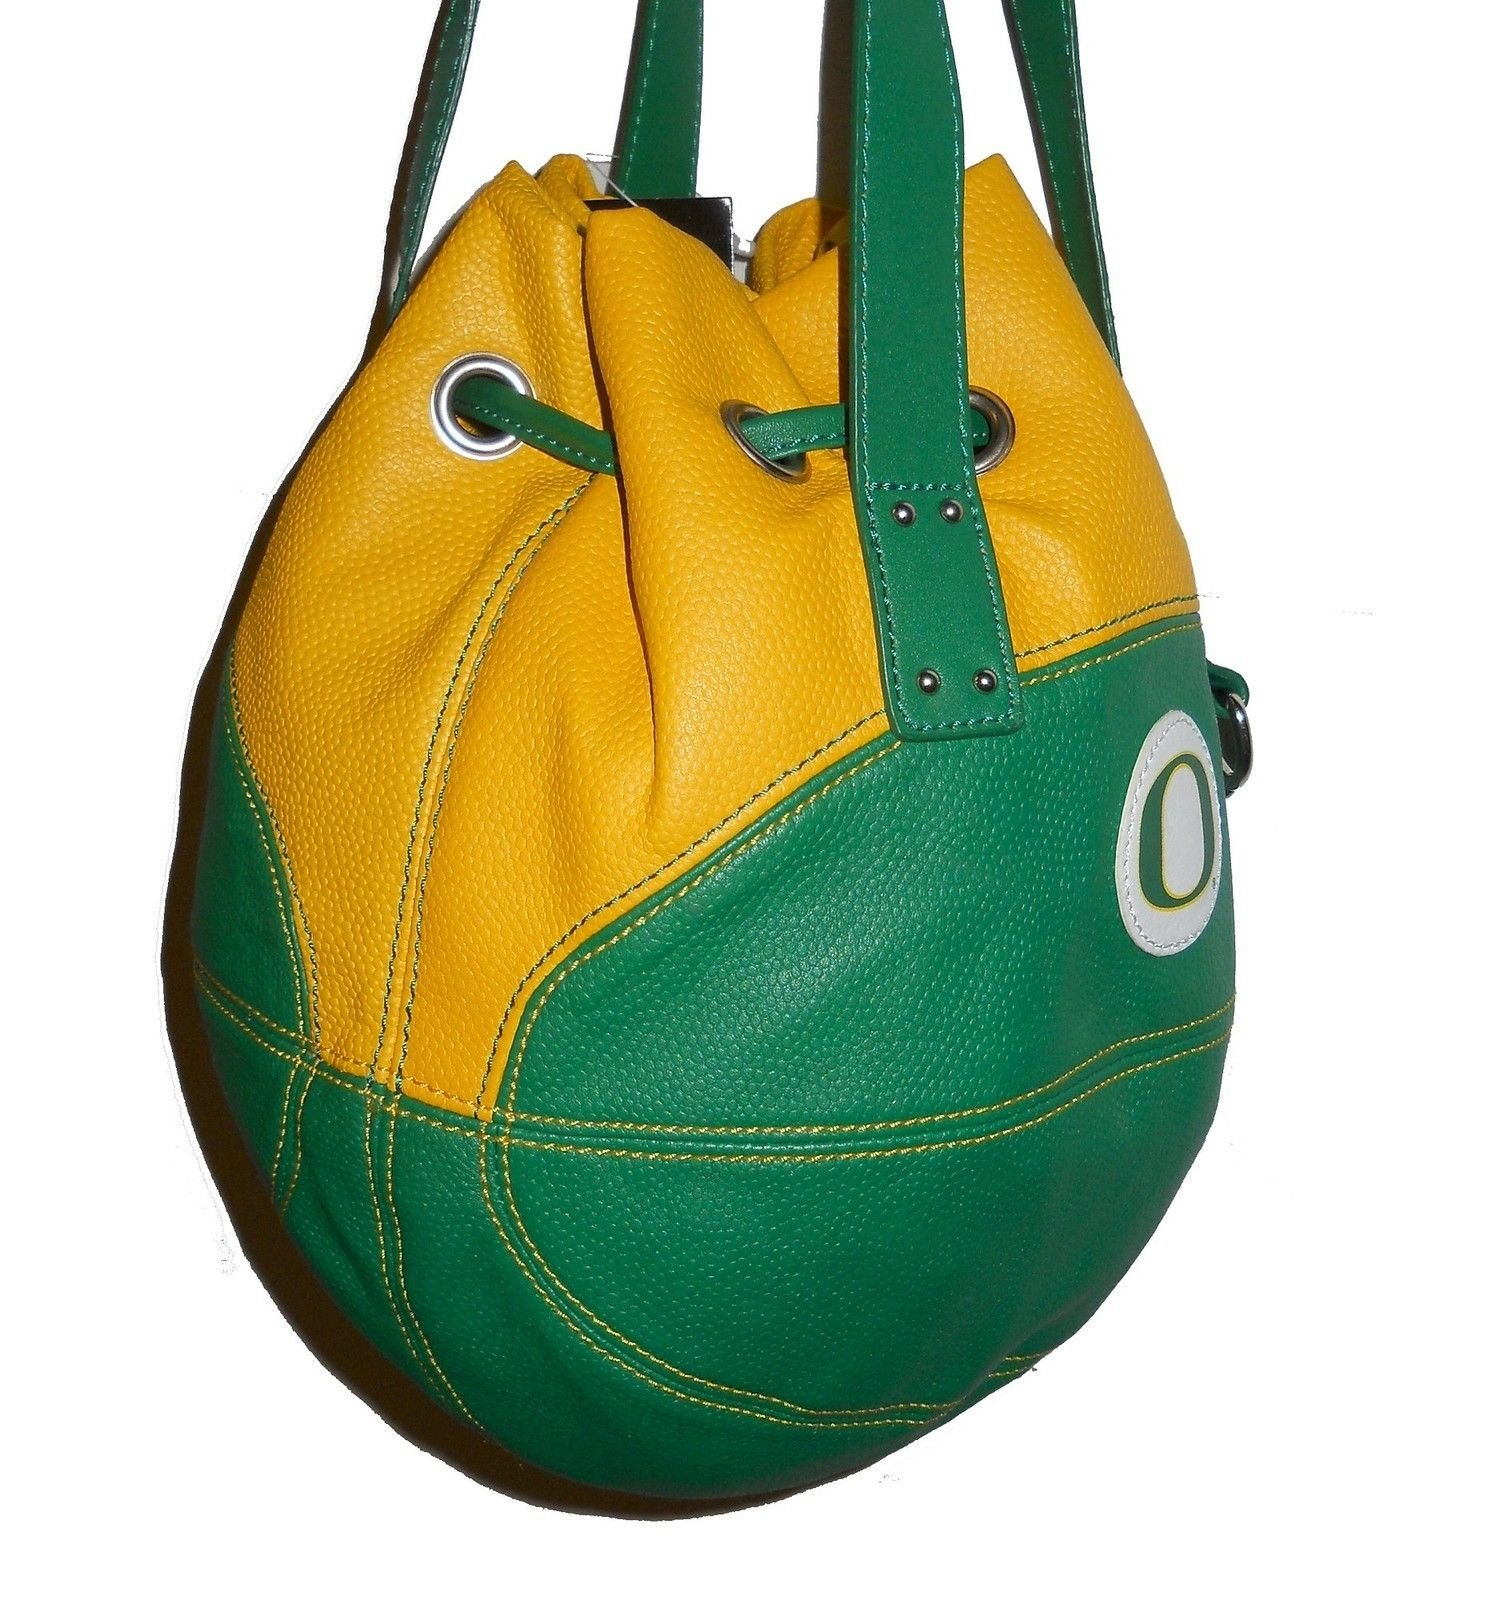 r25 Oregon Ducks NCAA BASKETBALL PURSE Green Yellow Ball Shaped Shoulder Bag f06bce8559